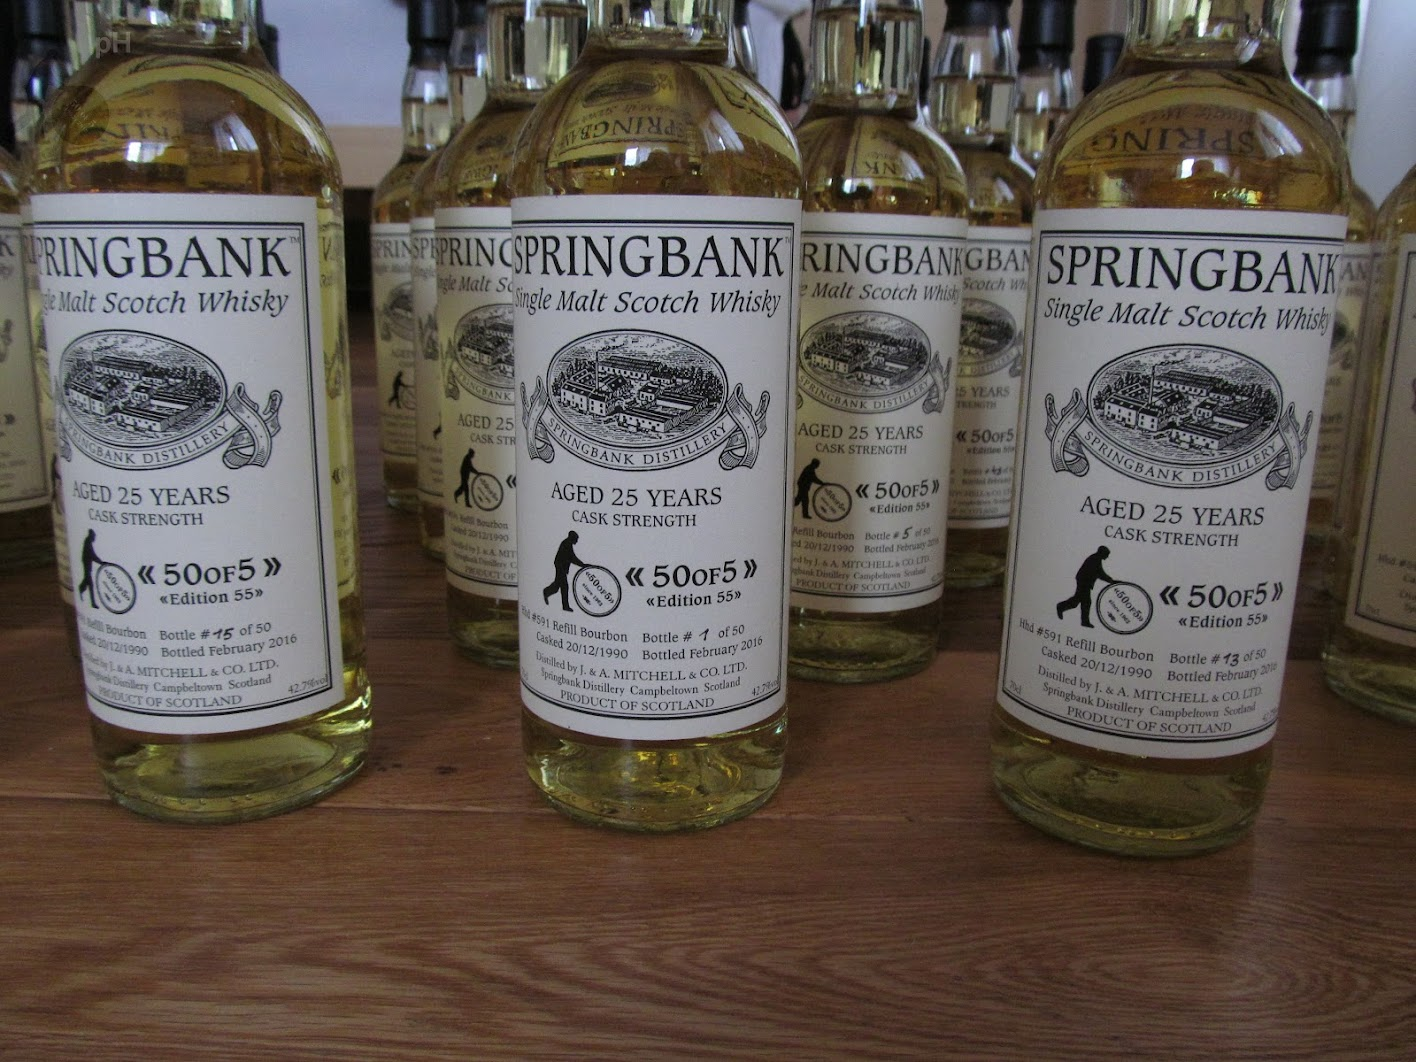 Springbank 50OF5